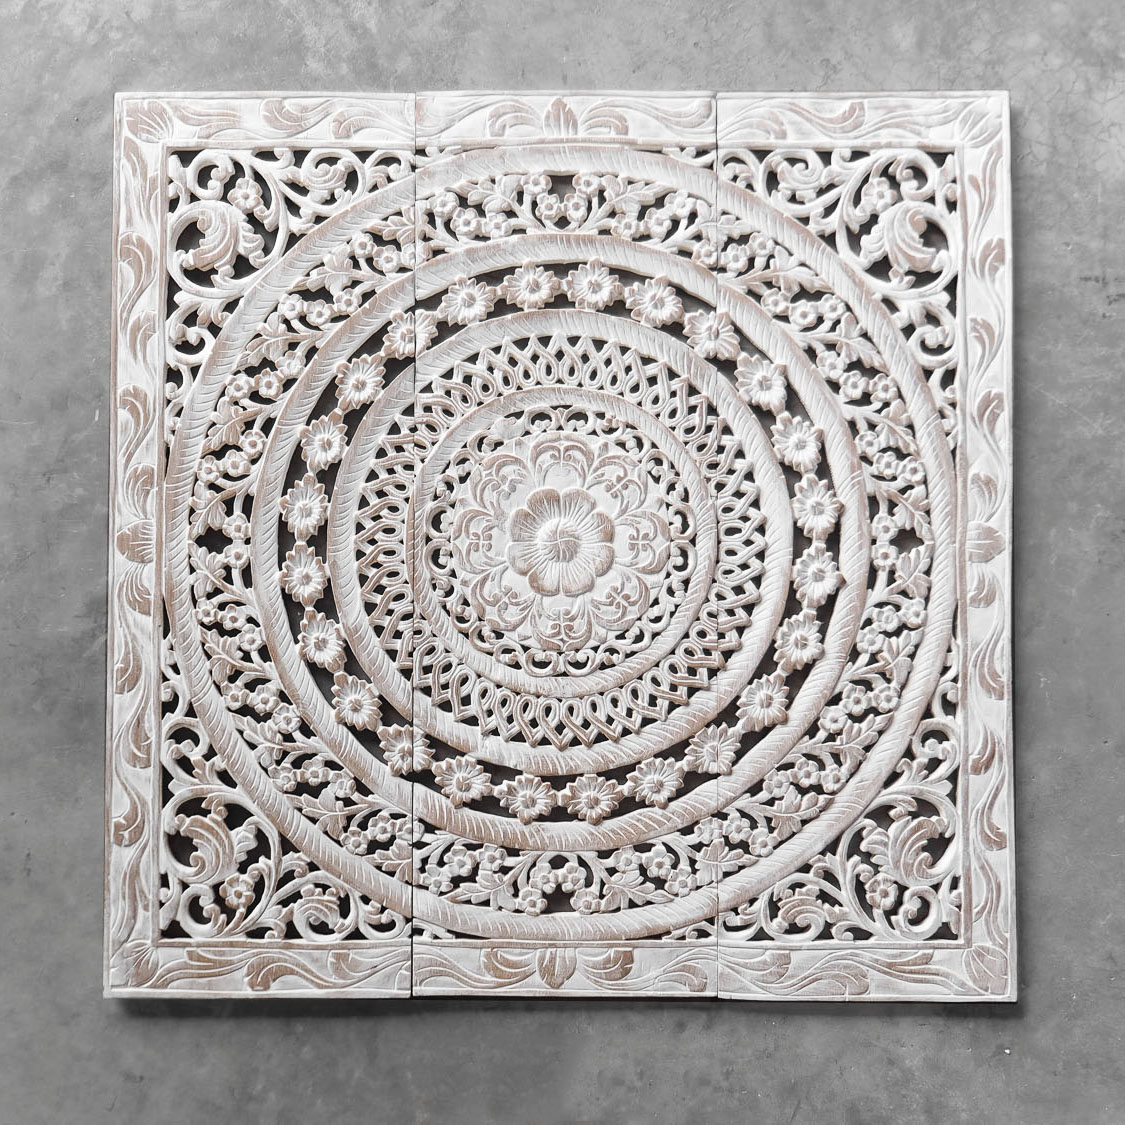 Wood Panel Wall Art WB Designs - Carved Wood Wall Panels WB Designs